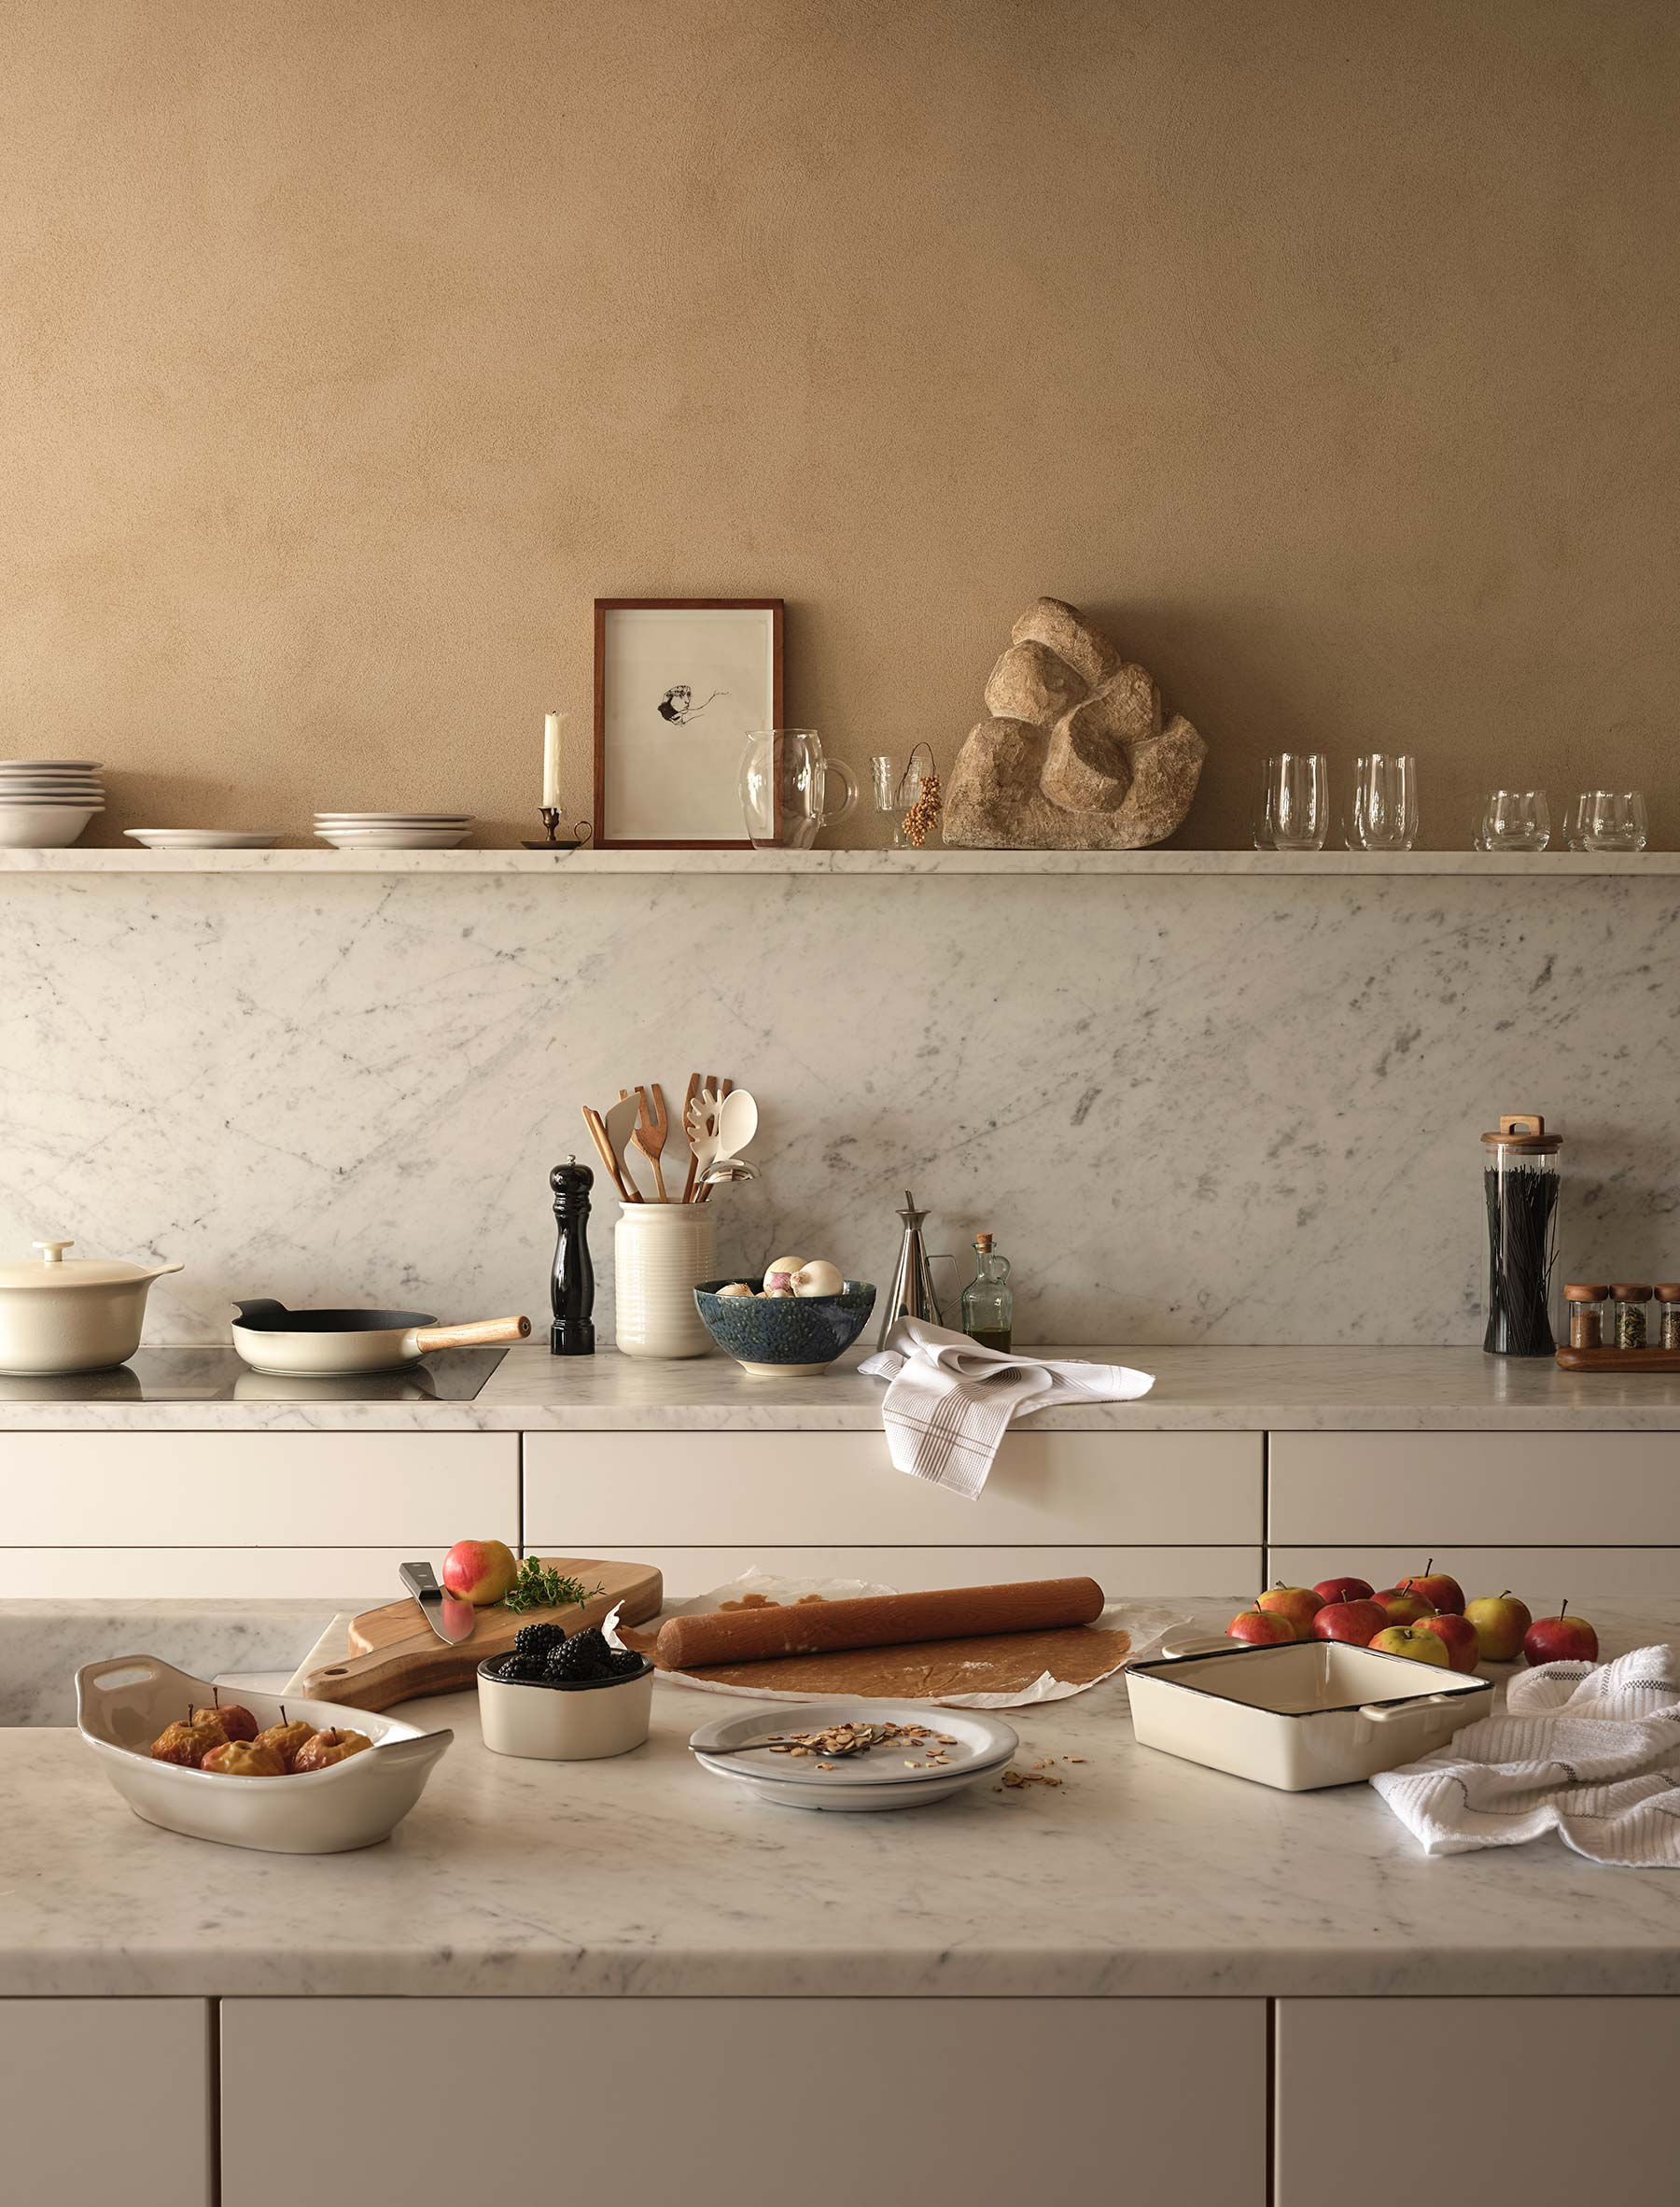 The Nordroom - A Life of Simplicity by Zara Home